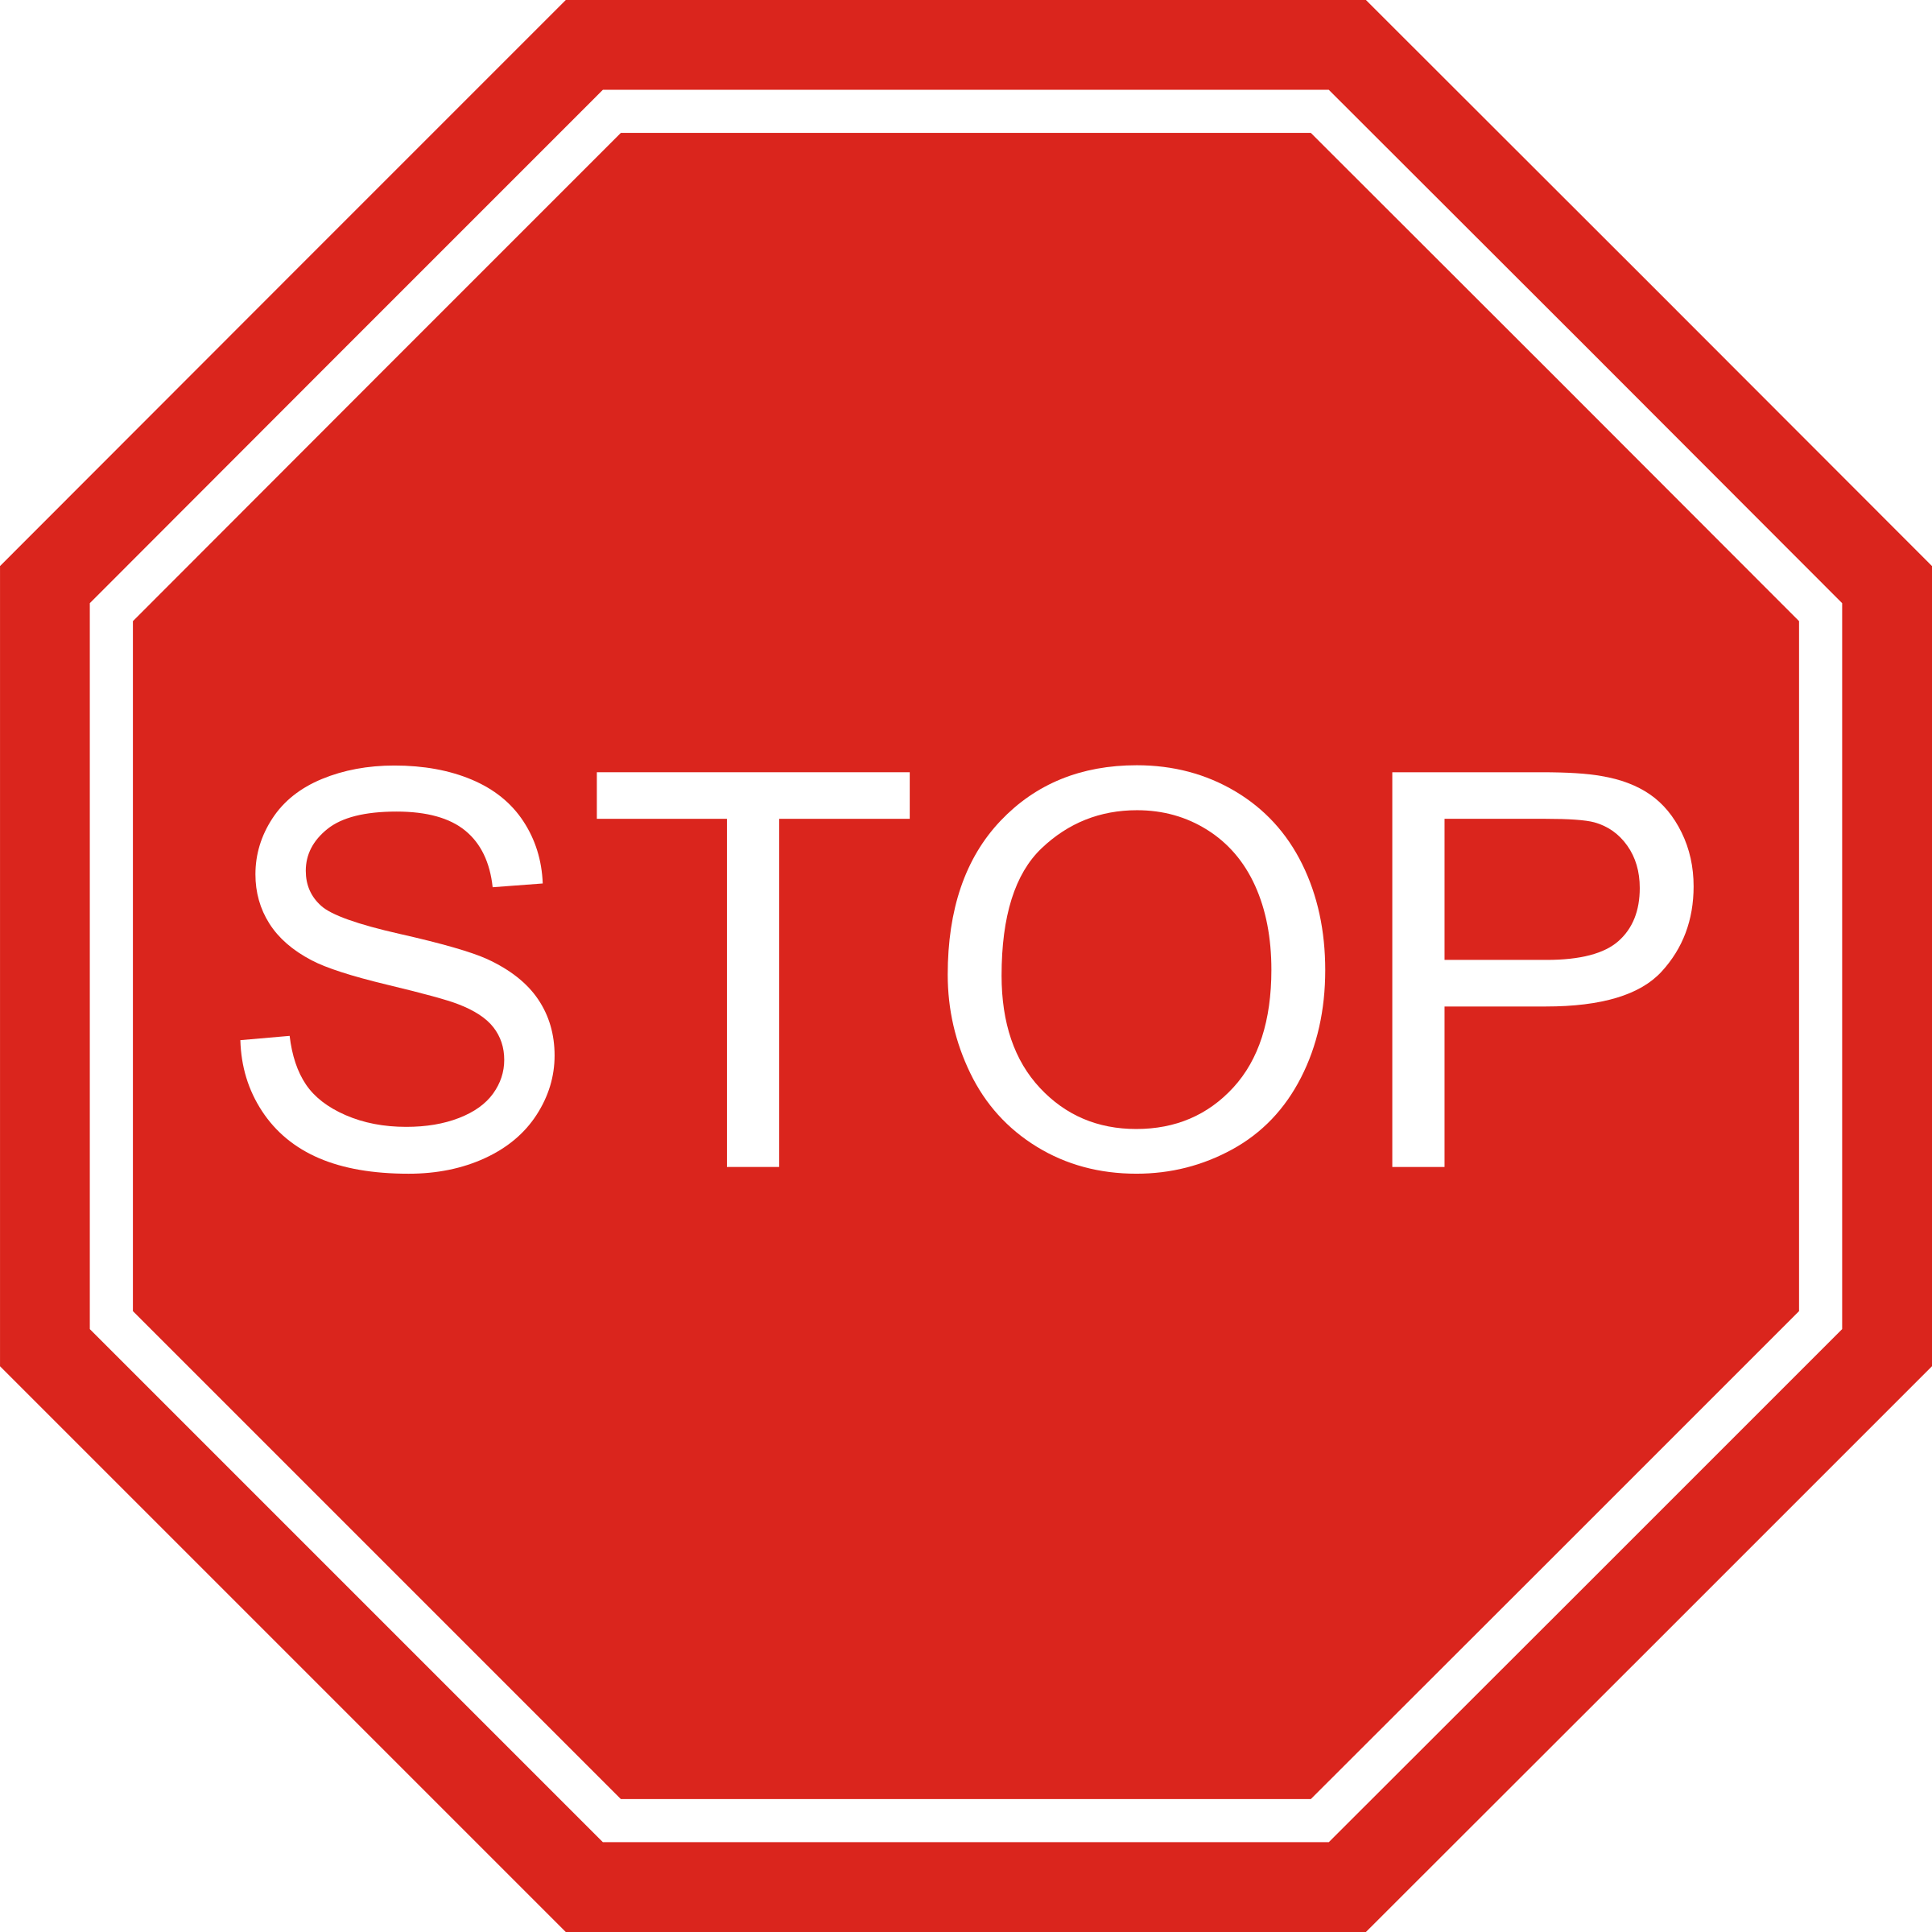 Stop Sign by palomaironique